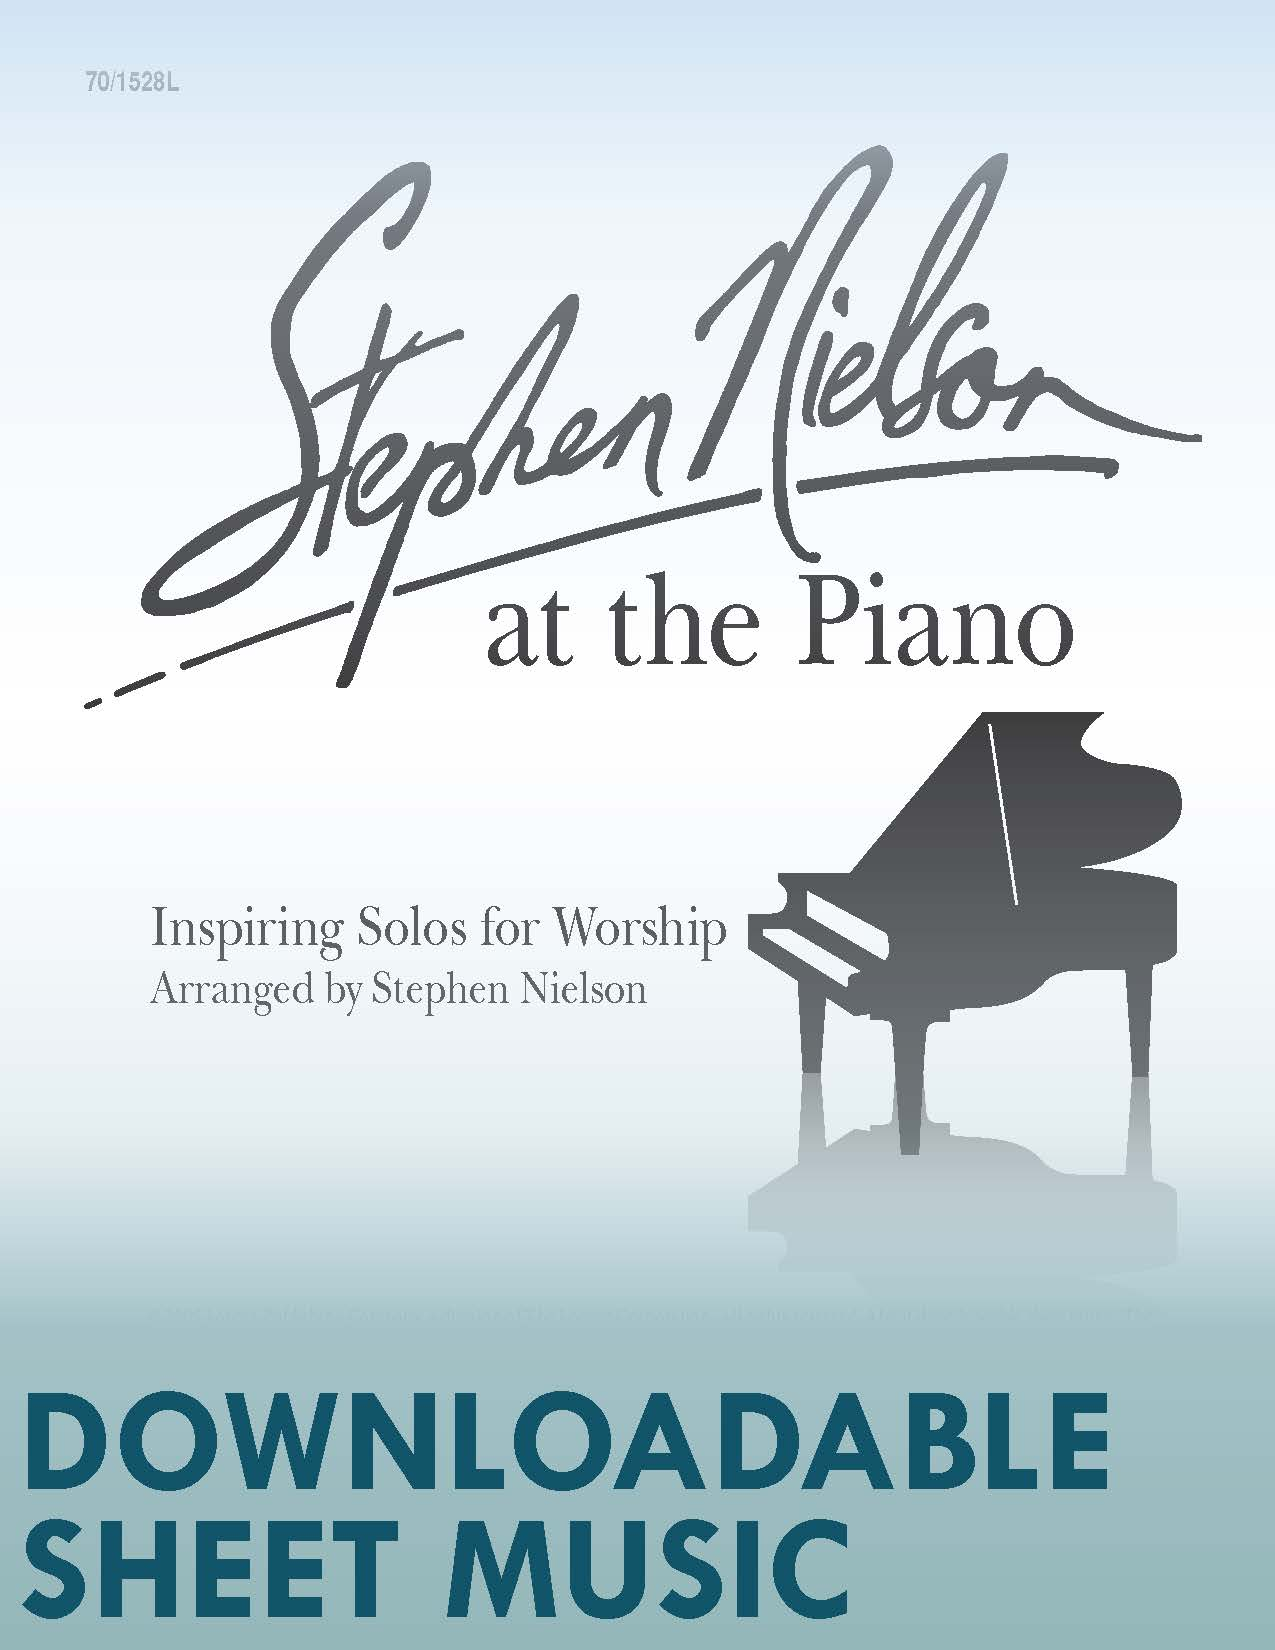 Stephen Nielson at the Piano - Digital Download